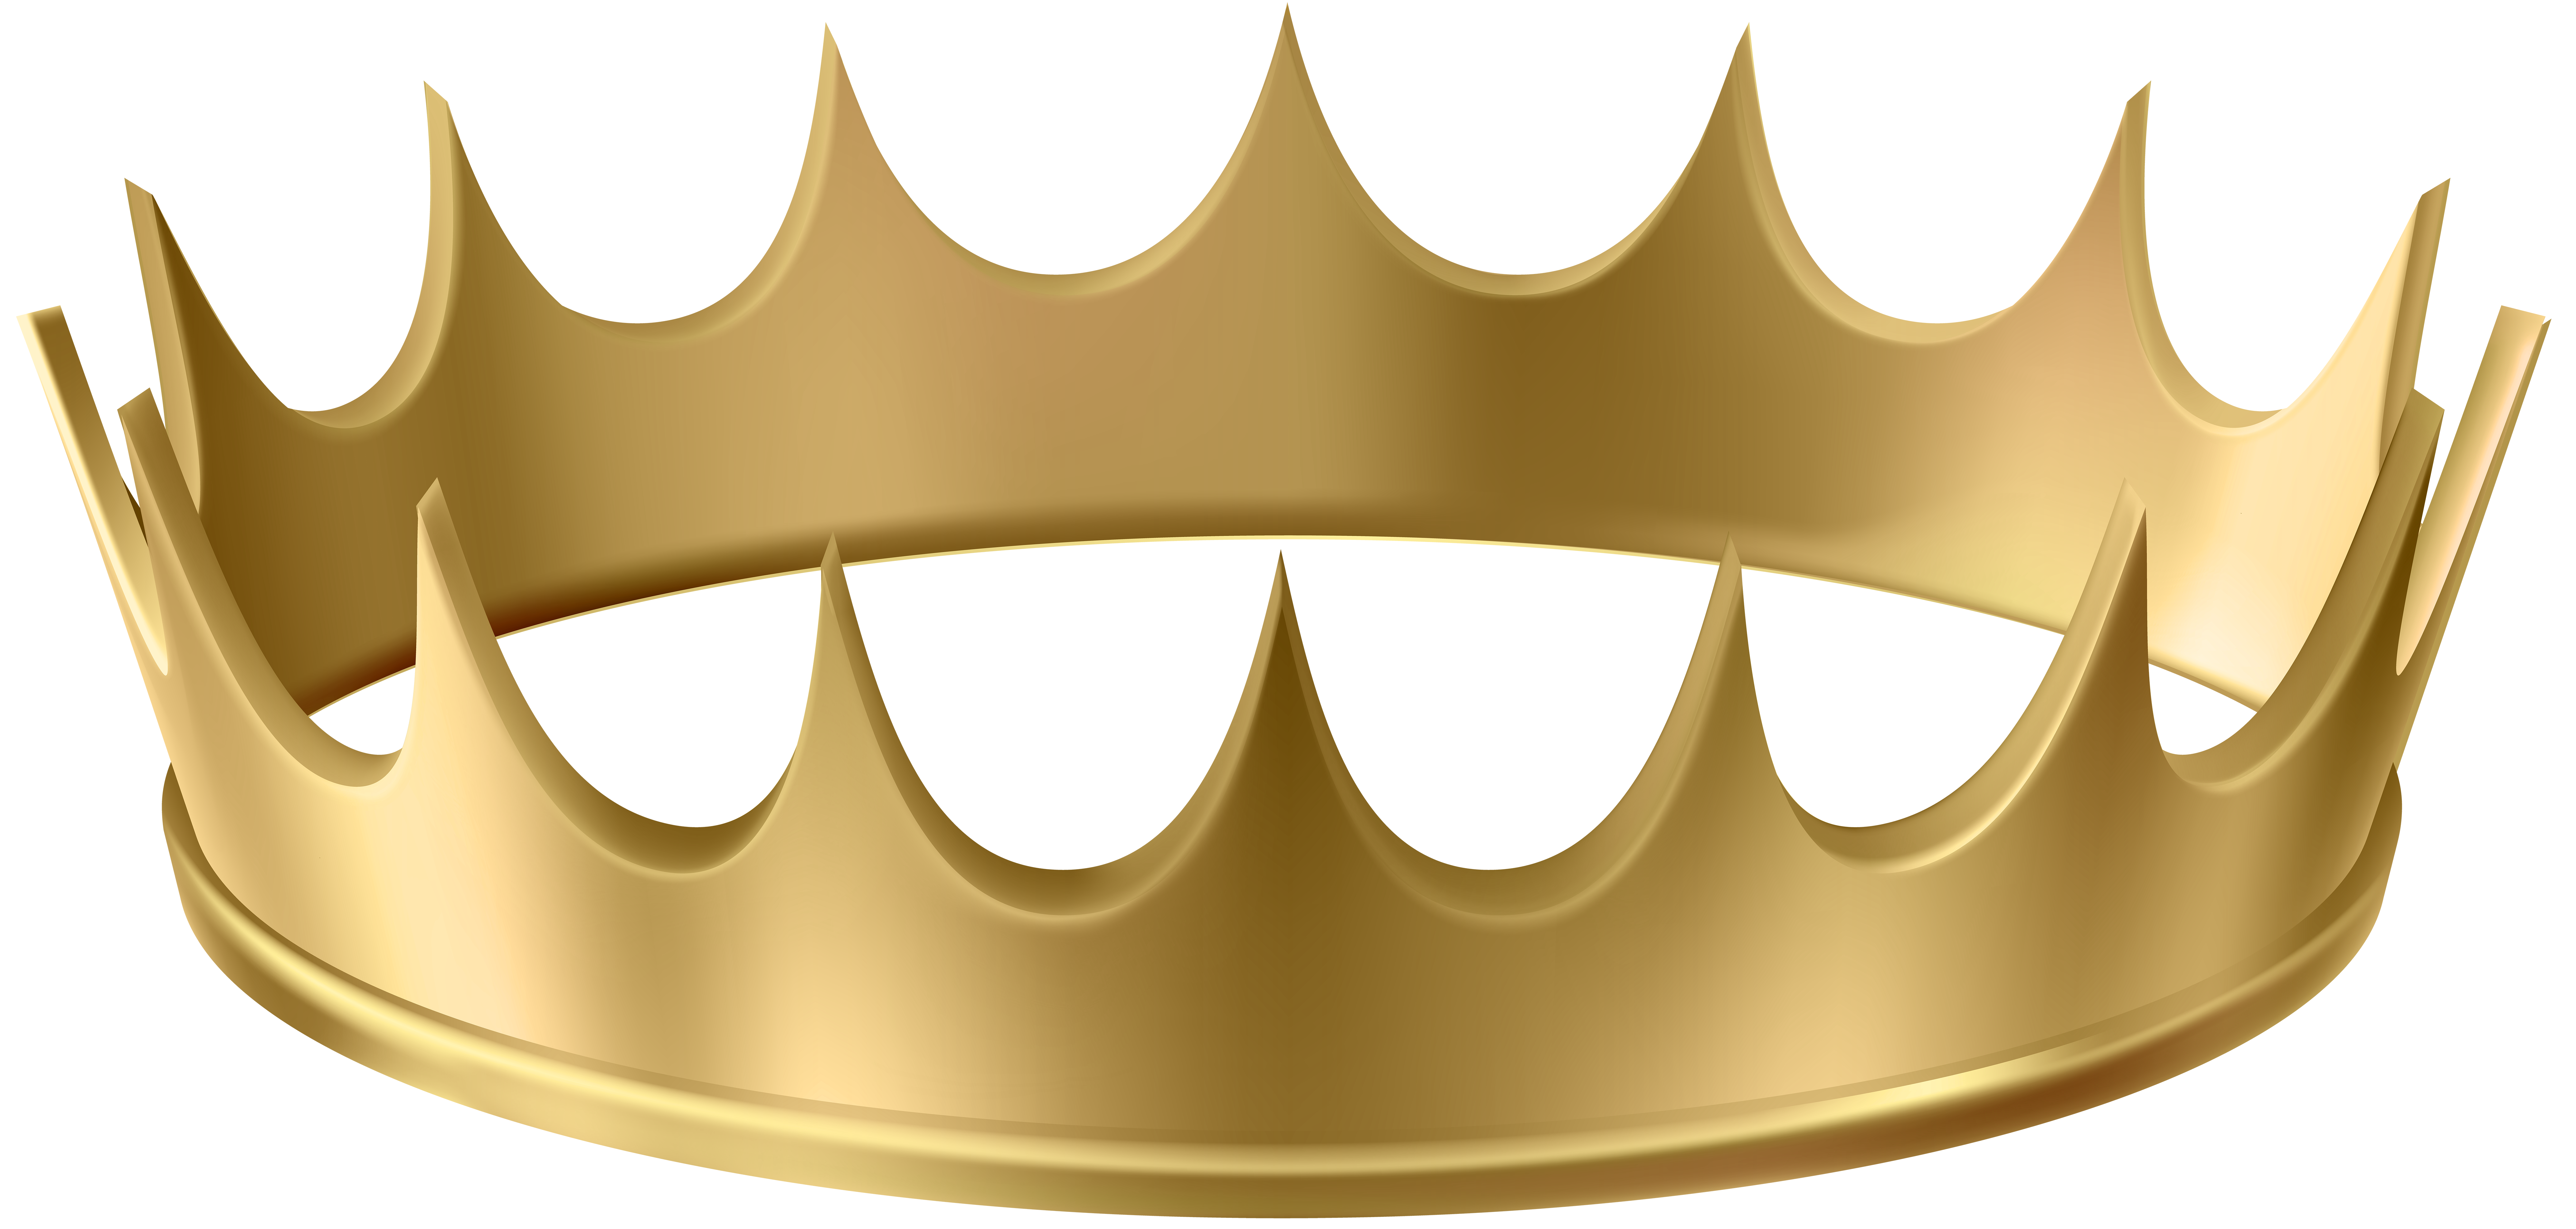 Crown clipart fruit. Amazing transparent image with